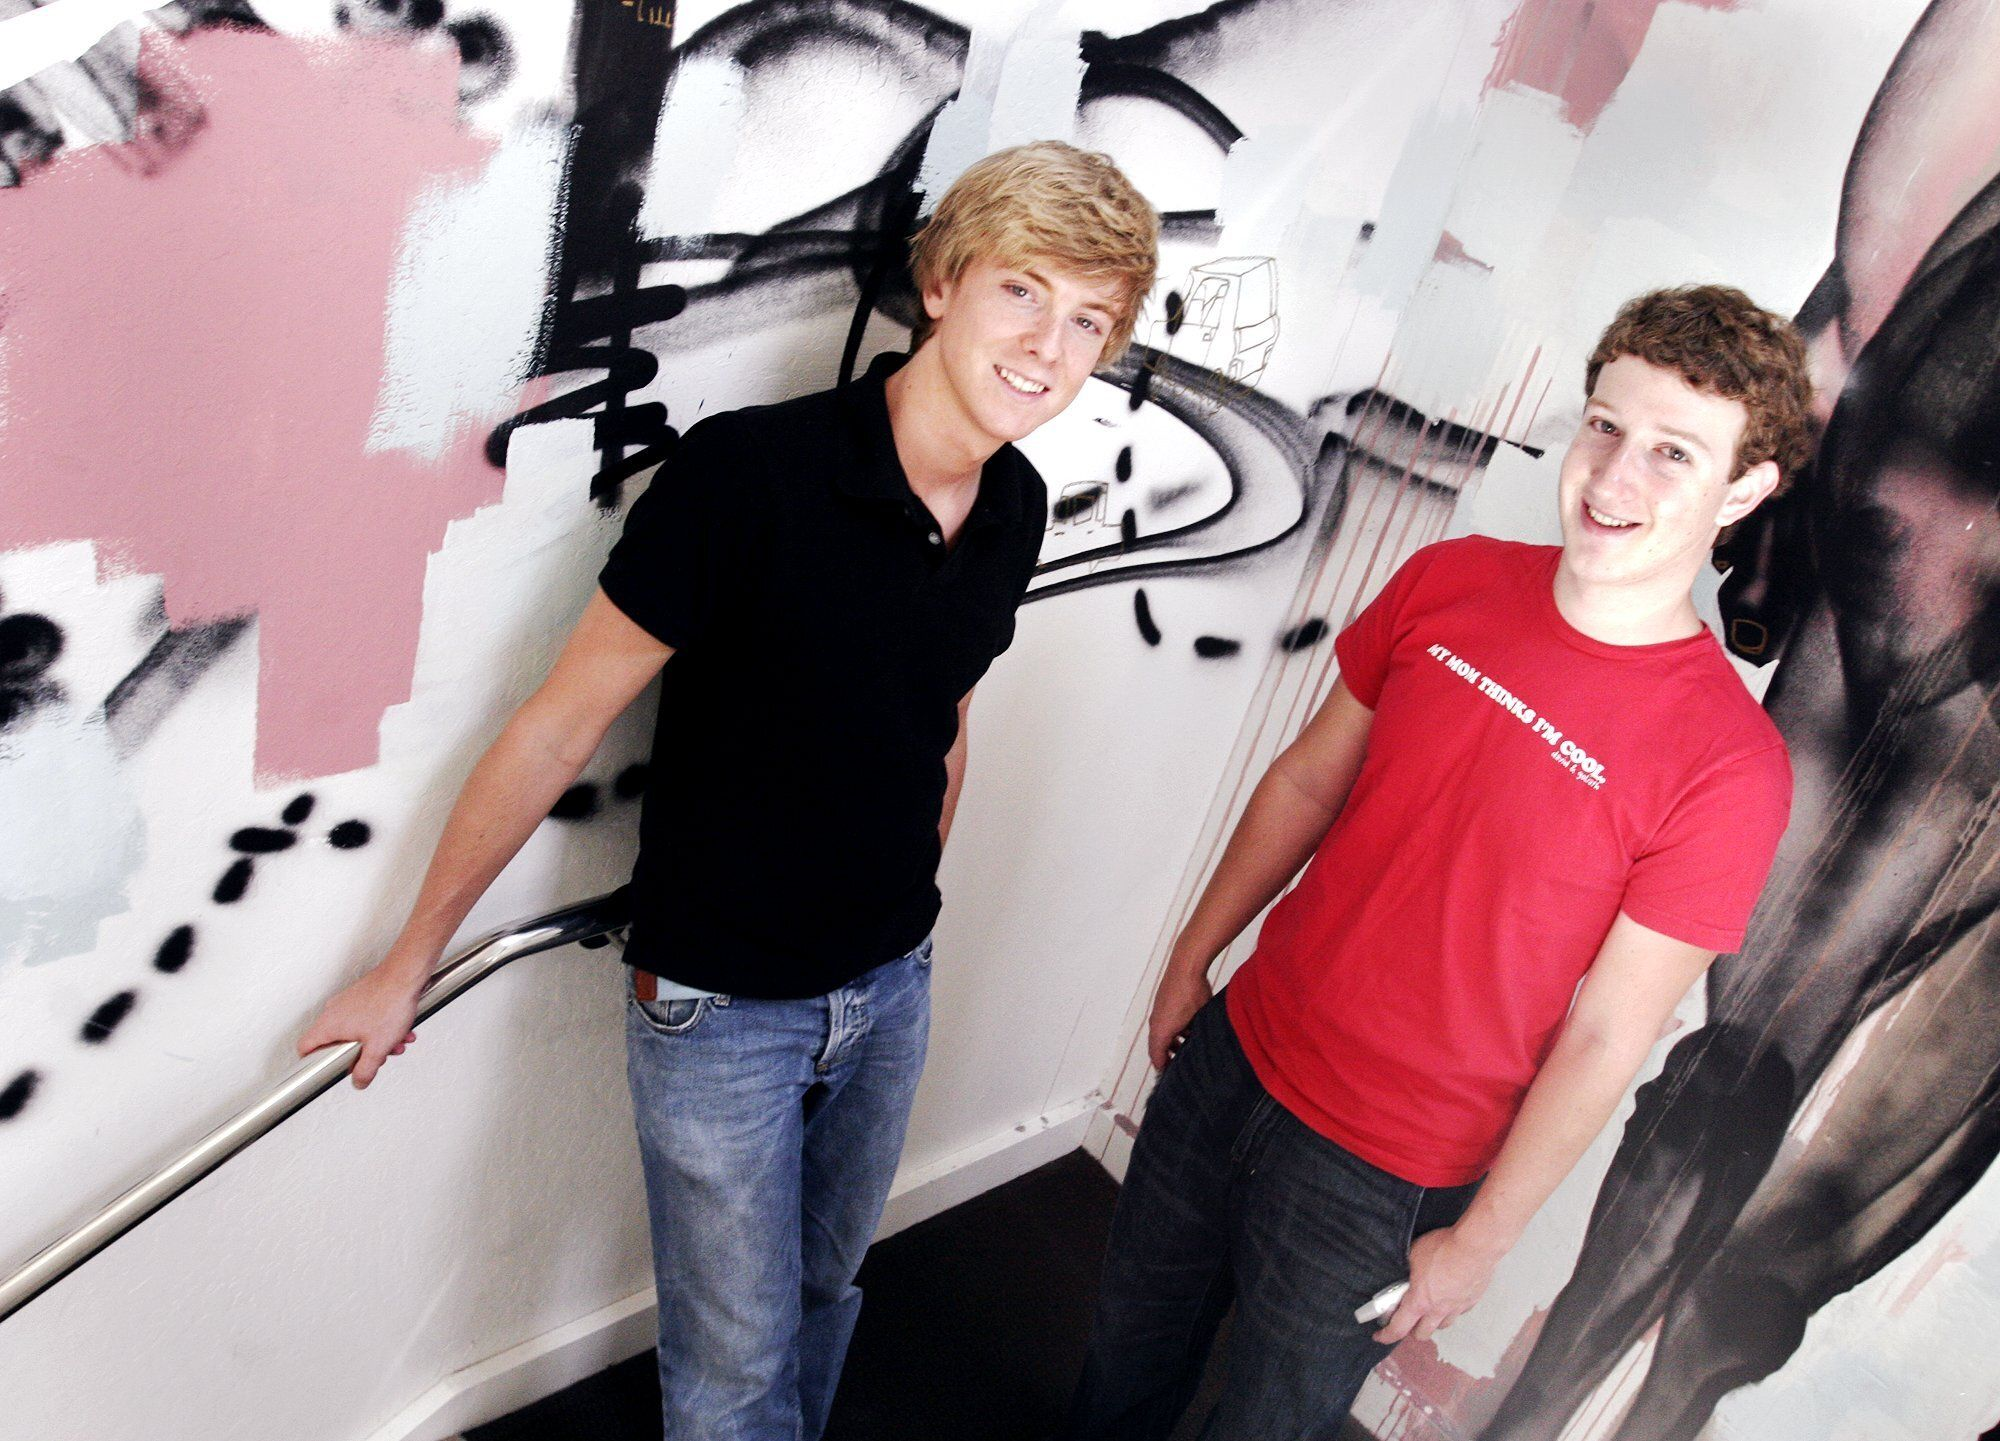 Chris Hughes (left) and Mark Zuckerberg (right) pose for a picture at theirPalo Alto office in 2005.